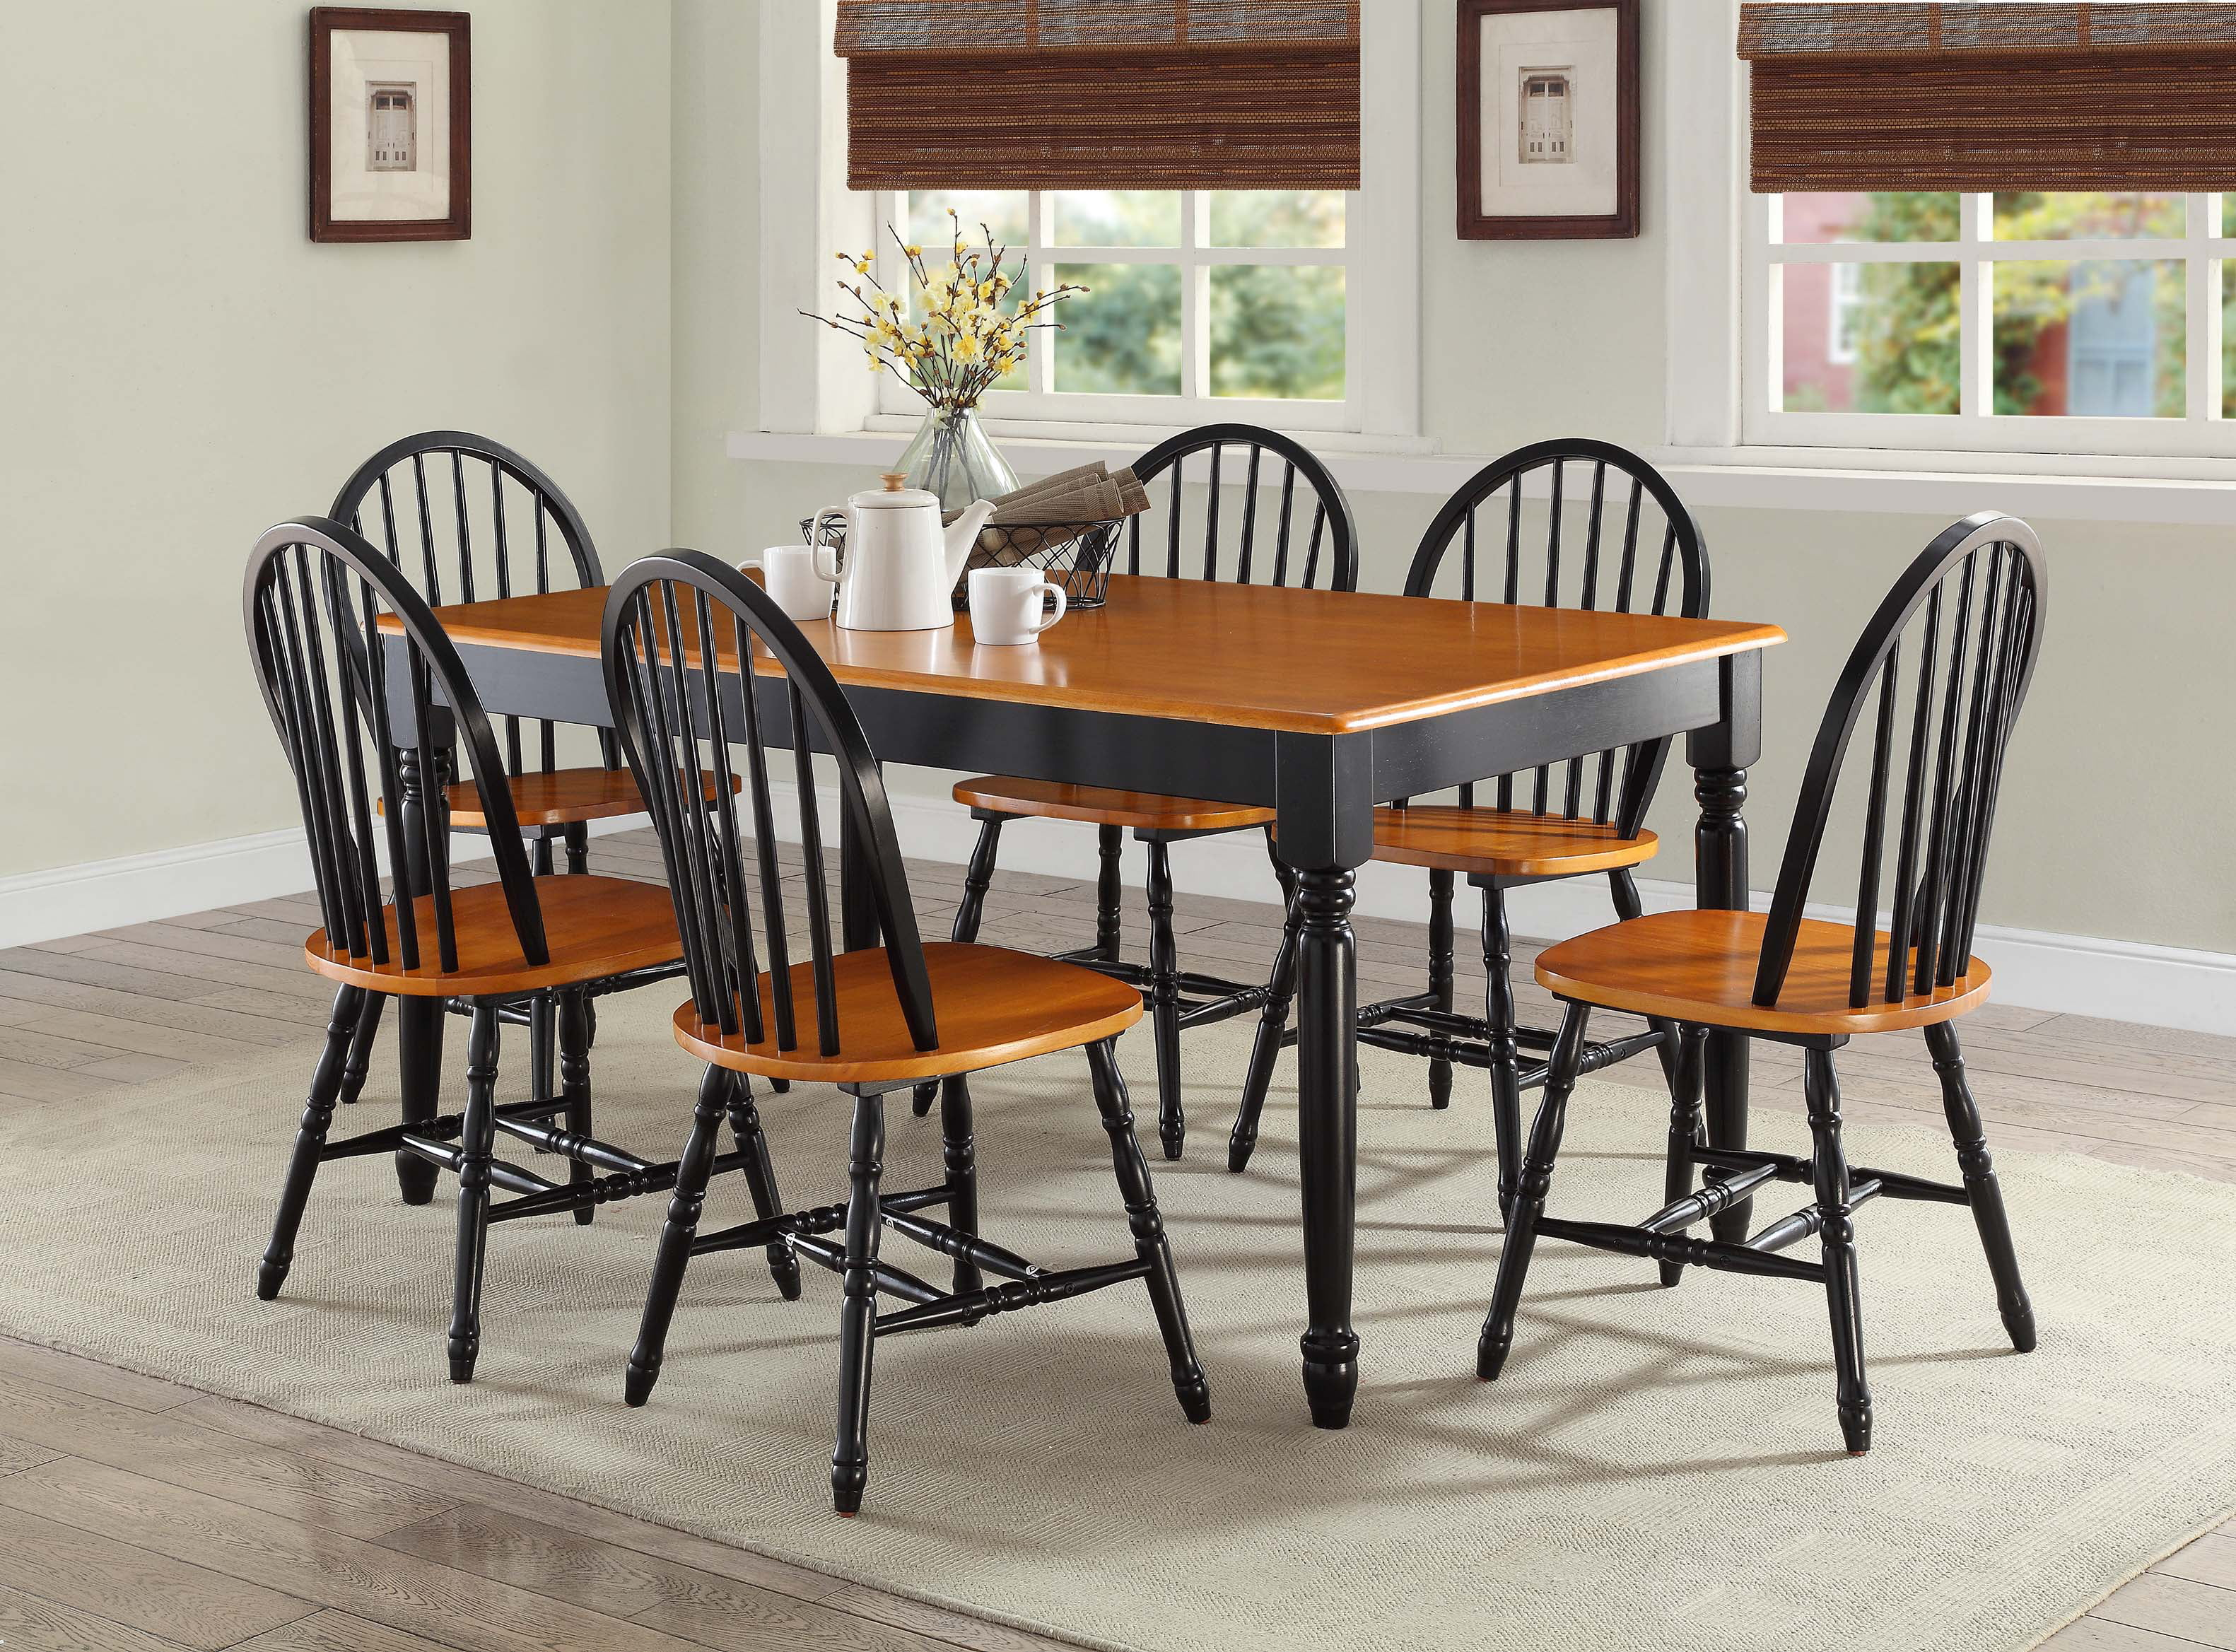 Exceptional Dining Room Table Seats Up To For 6 People Solid Oak Wood Modern Black  Rectangle | EBay